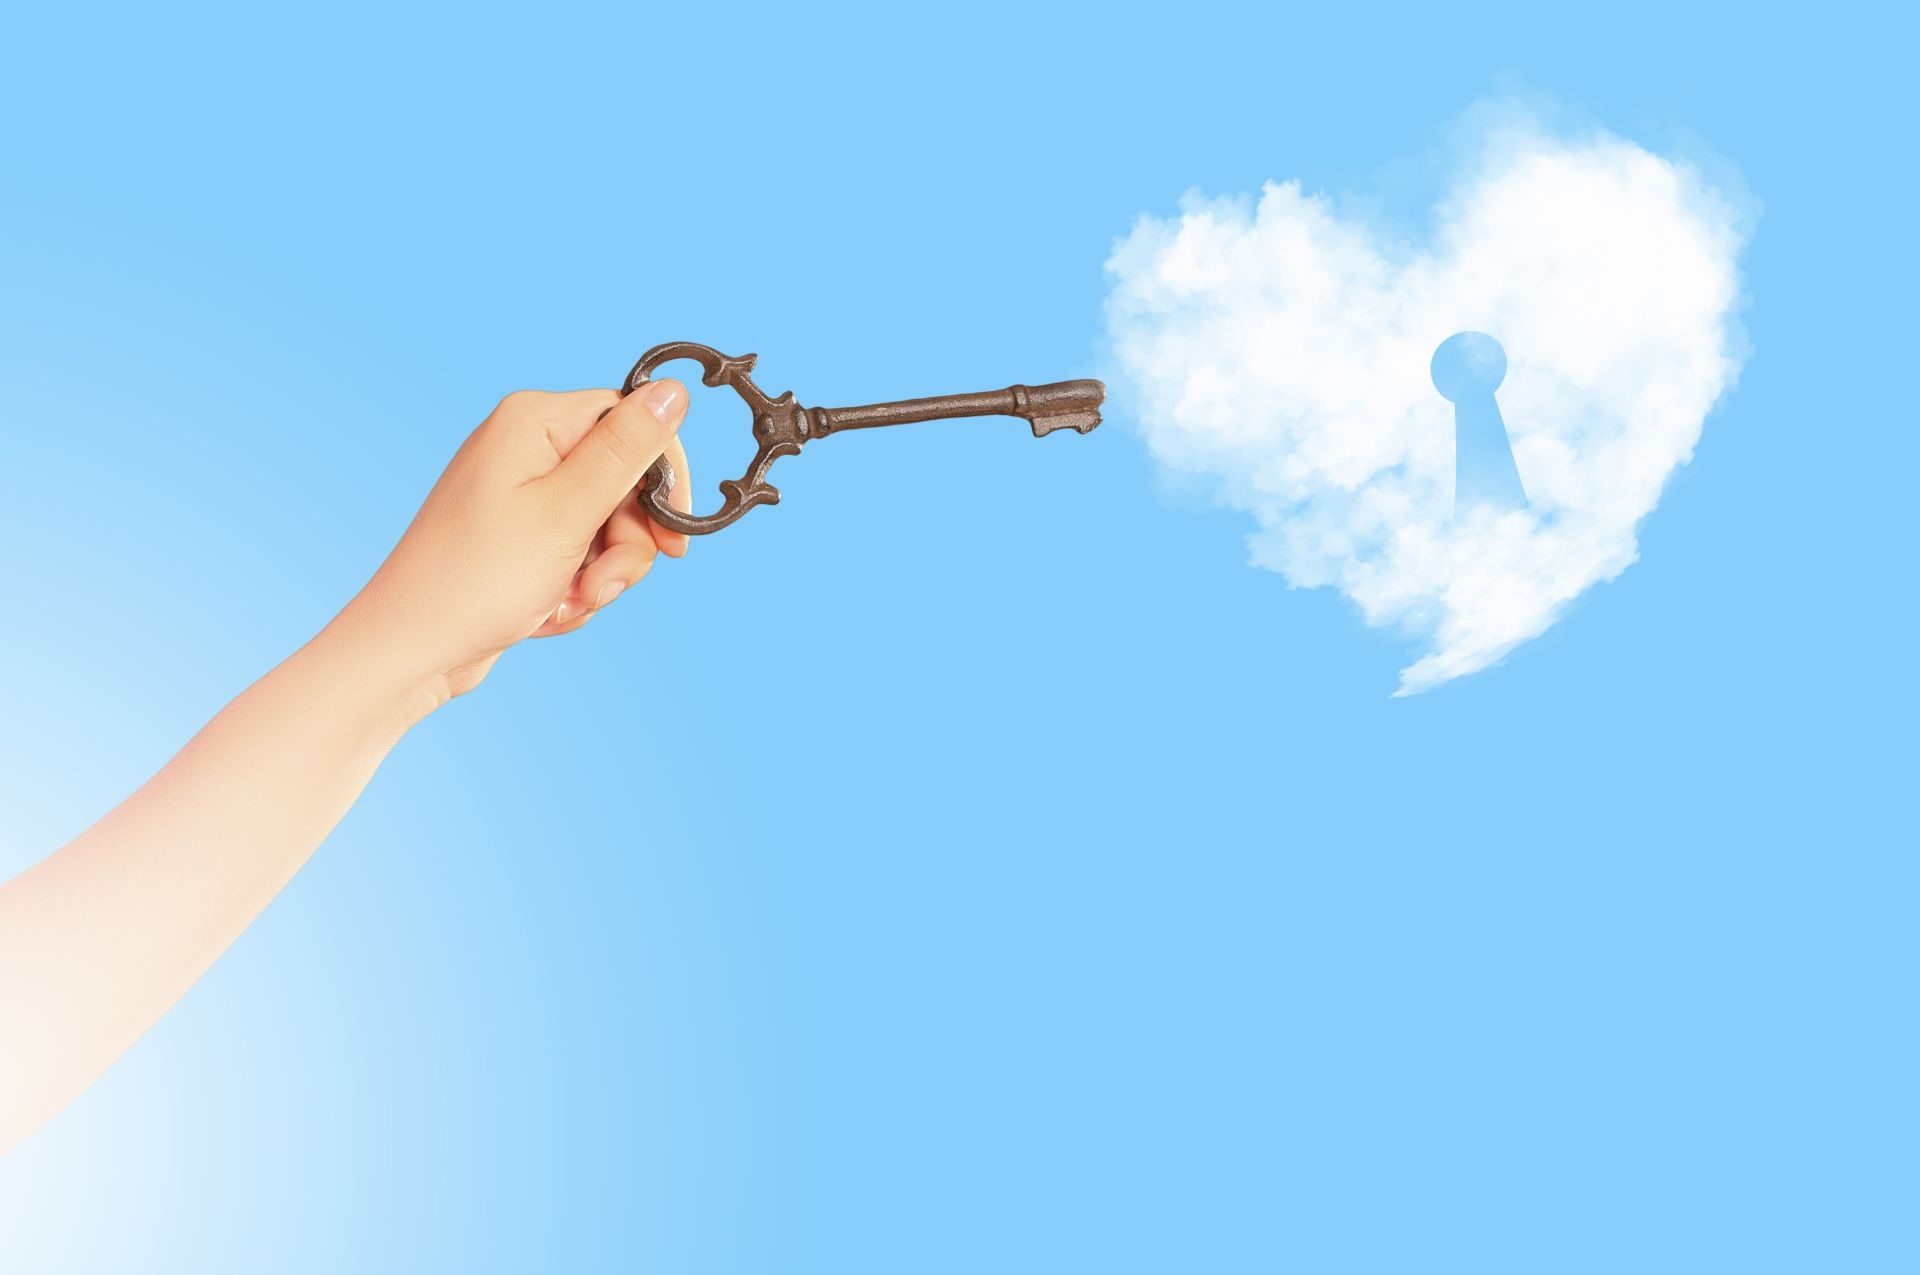 Gina Rolkowski discusses how healing from sexual trauma is often plagued by shame and grief. She shares the 5 keys of her Bridge to Breakthroughs program and how they aid in the journey of resolving childhood trauma as an adult. Image displayed shows a hand holding bronze key up to heart-shaped cloud with keyhole in a blue sky